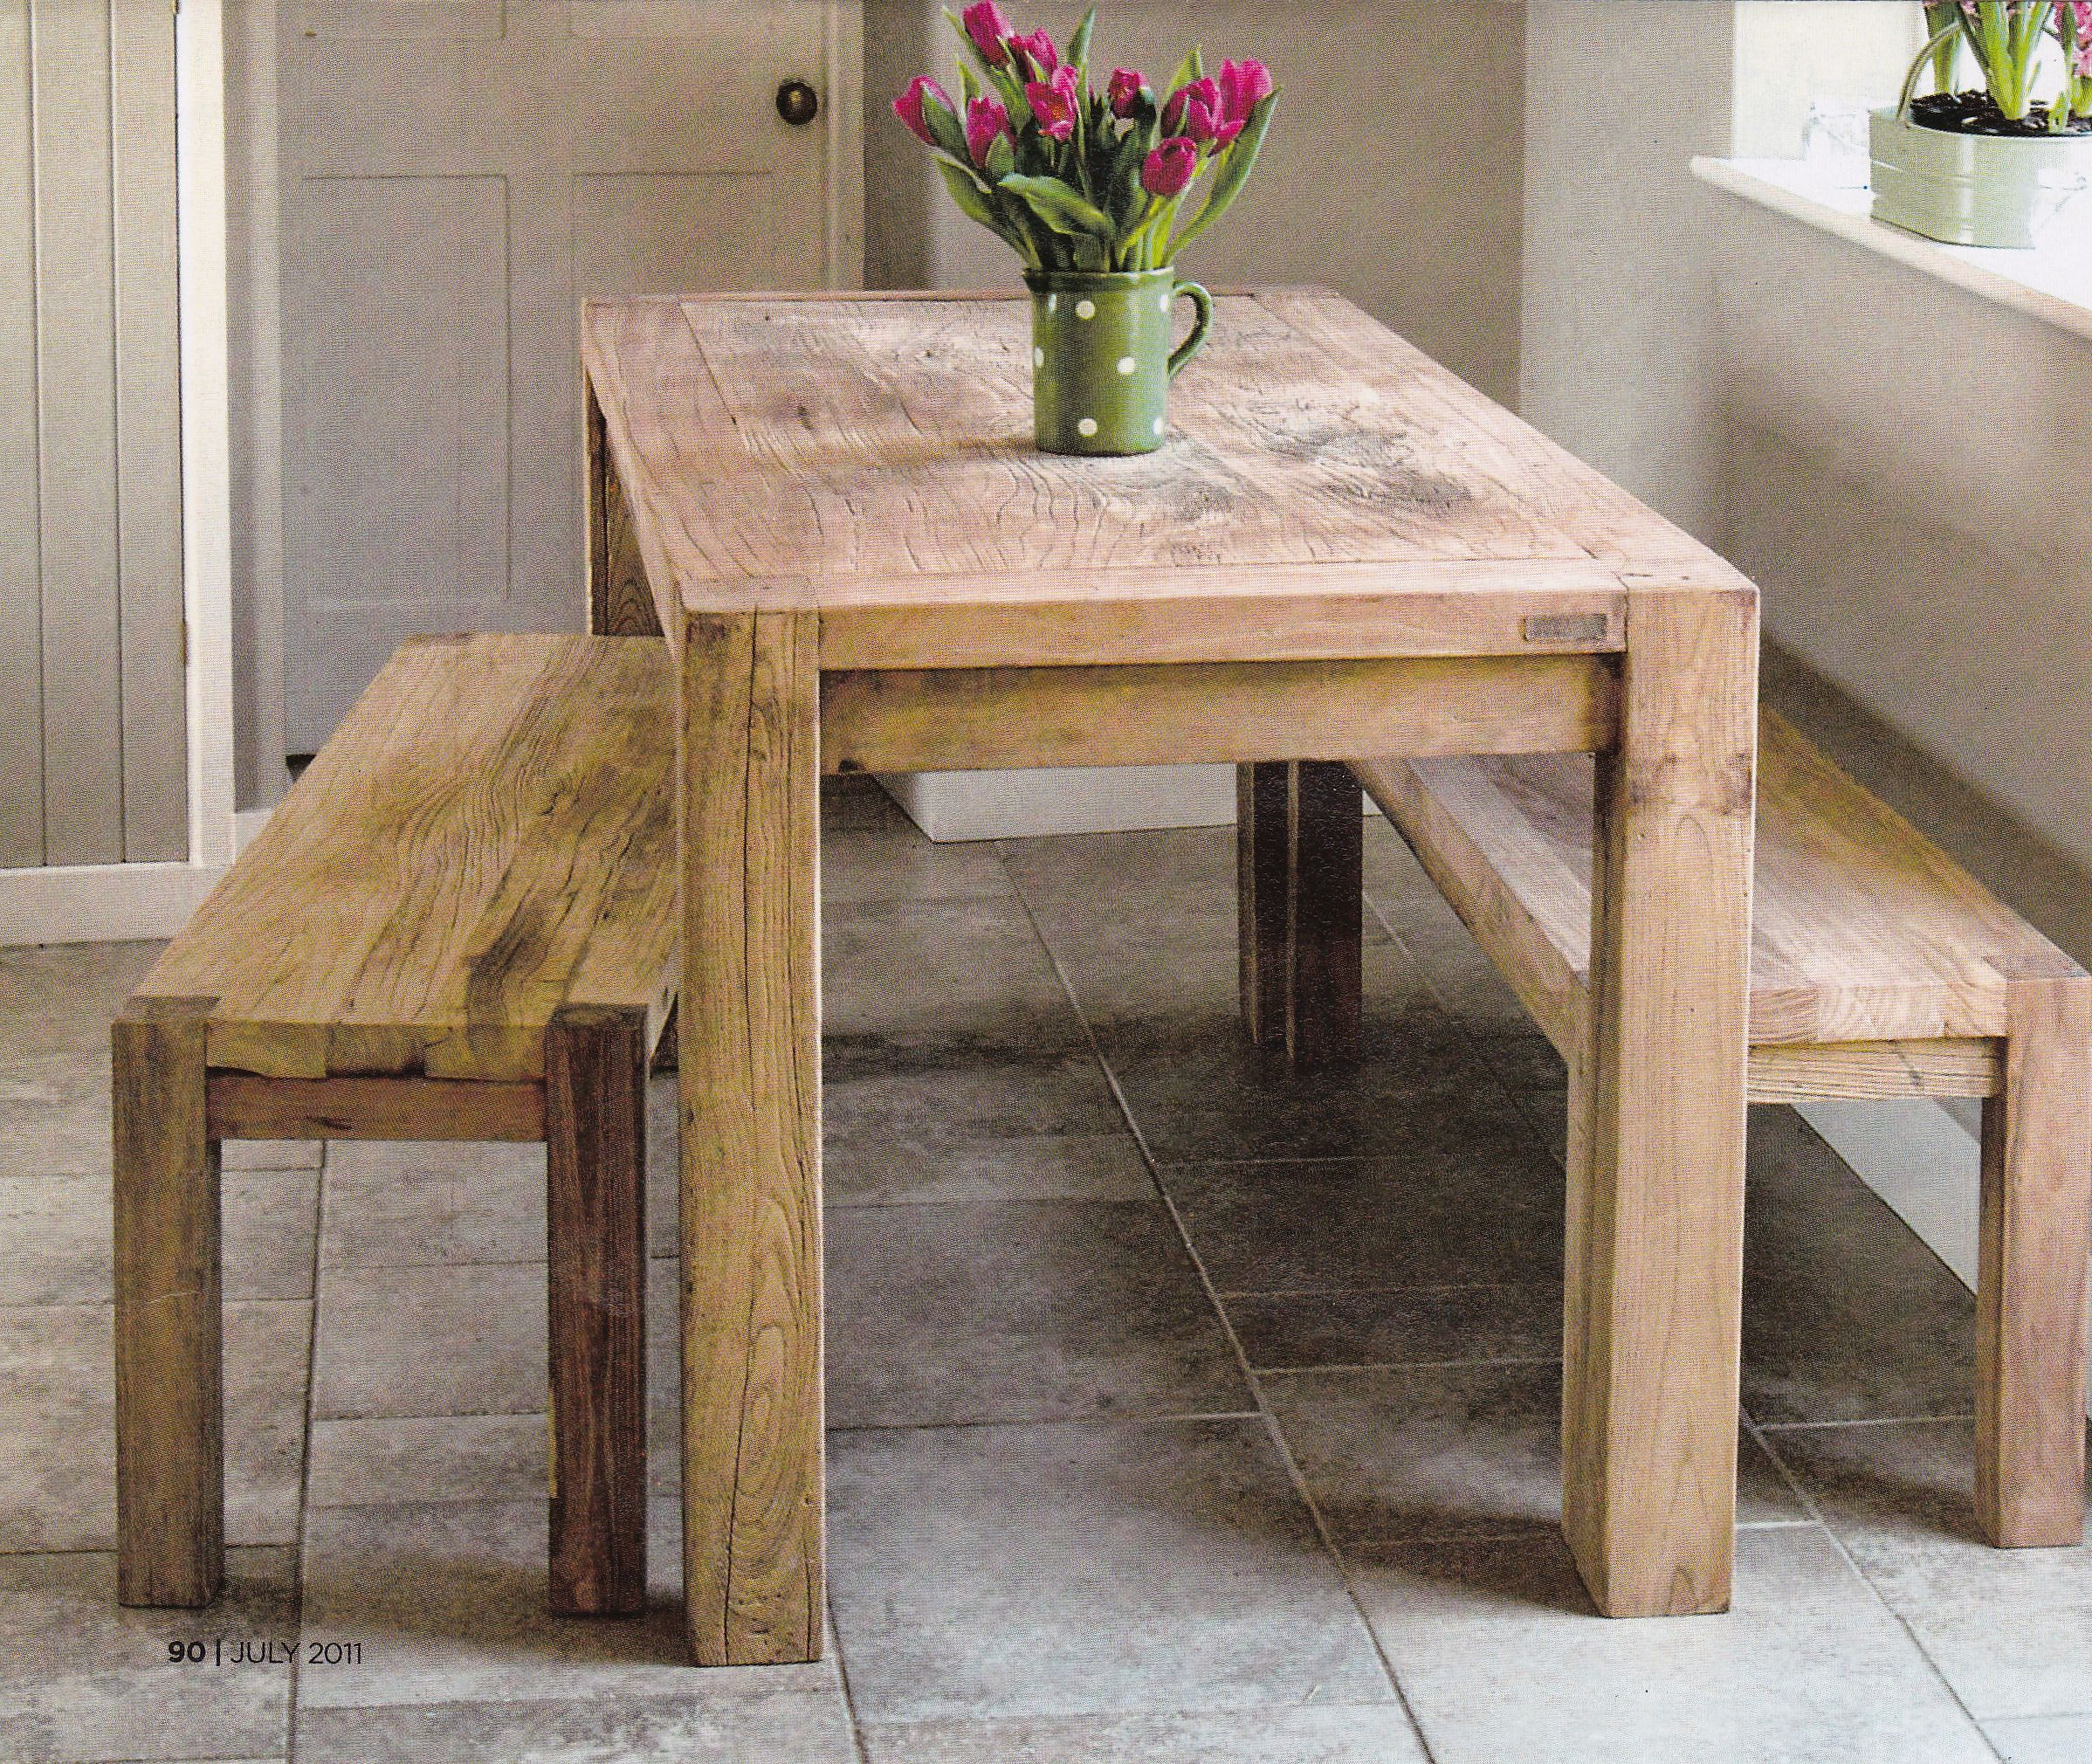 Kitchen Table With Bench And Chairs Mdf Cabinets Rustic Benches That Can Slide